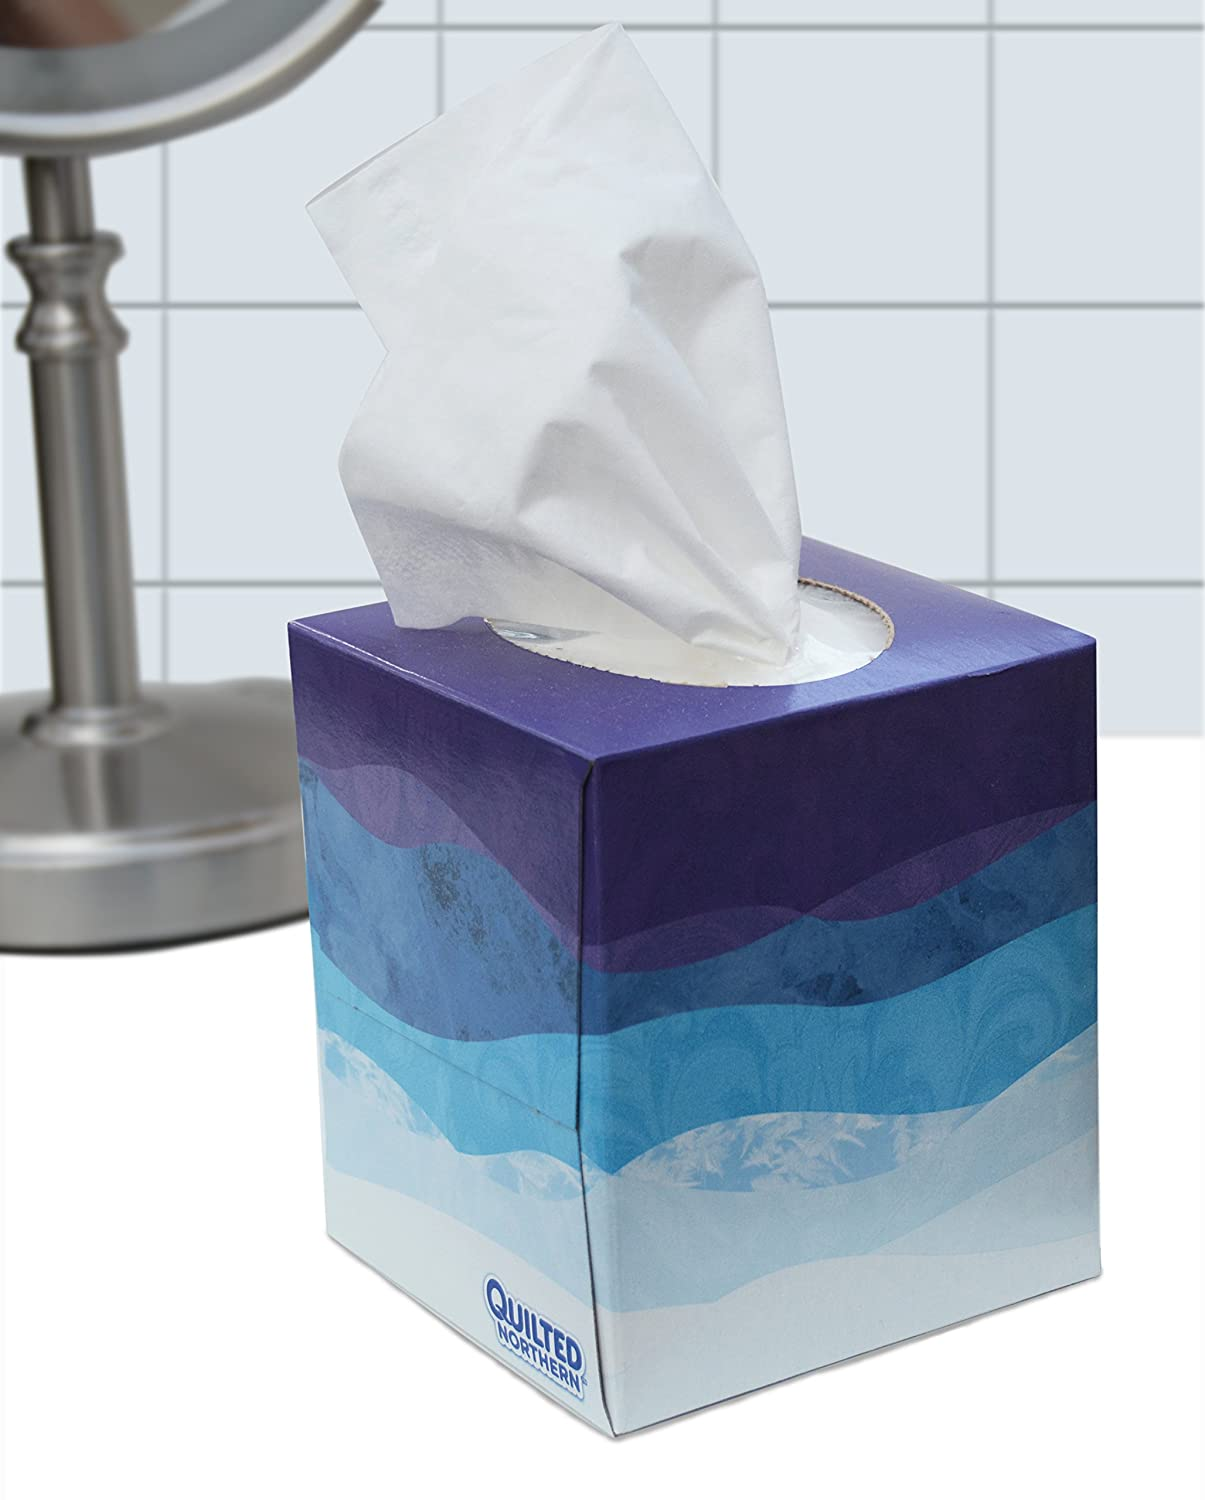 The world Direct printing on facial tissue think, that